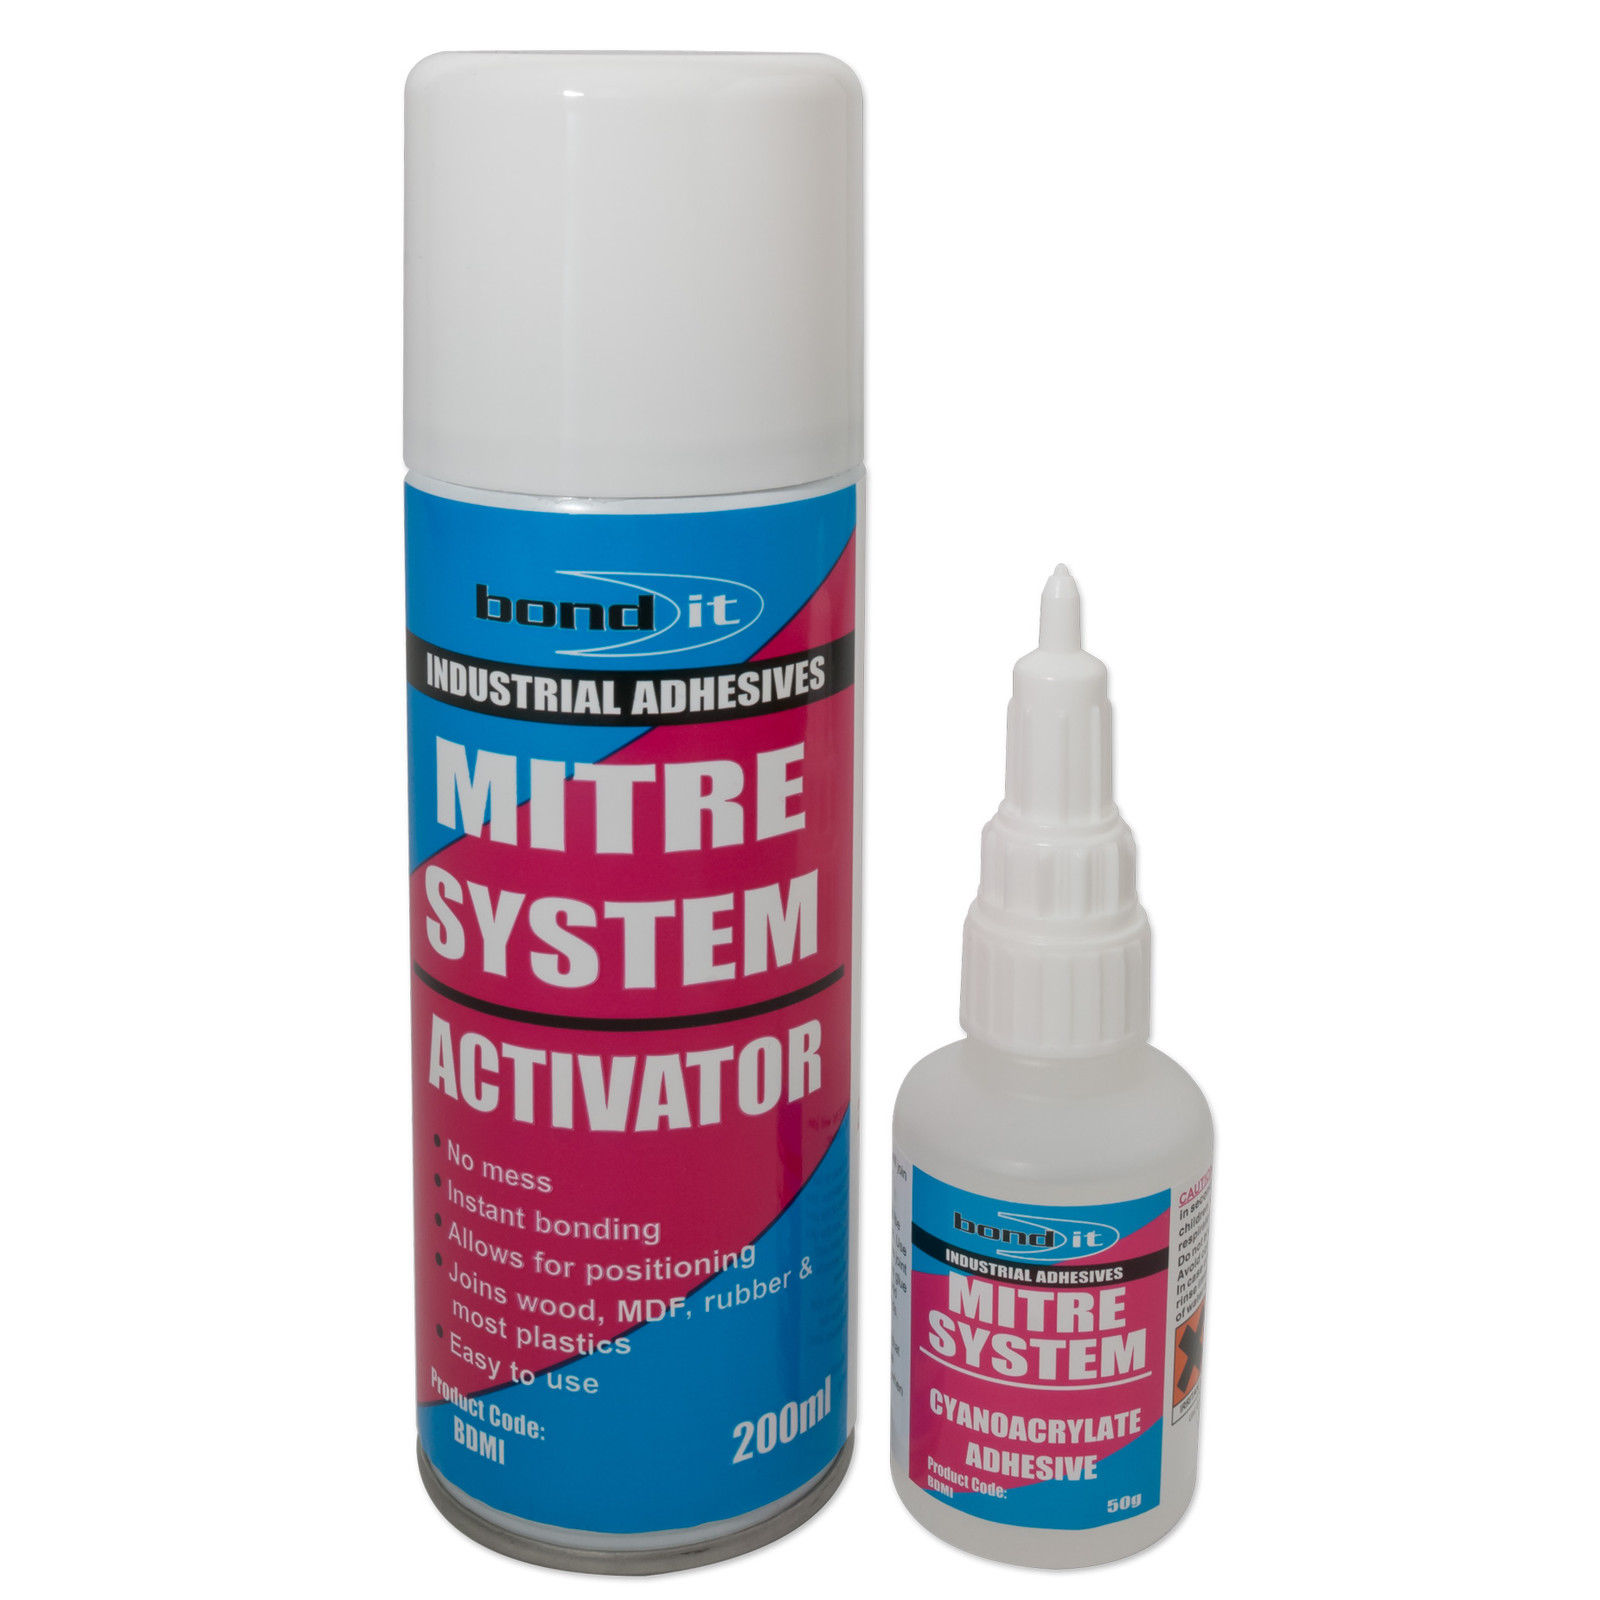 Details about Bond-it Mitre Bonding Kit Superglue & Activator System Rapid  Joint Adhesive